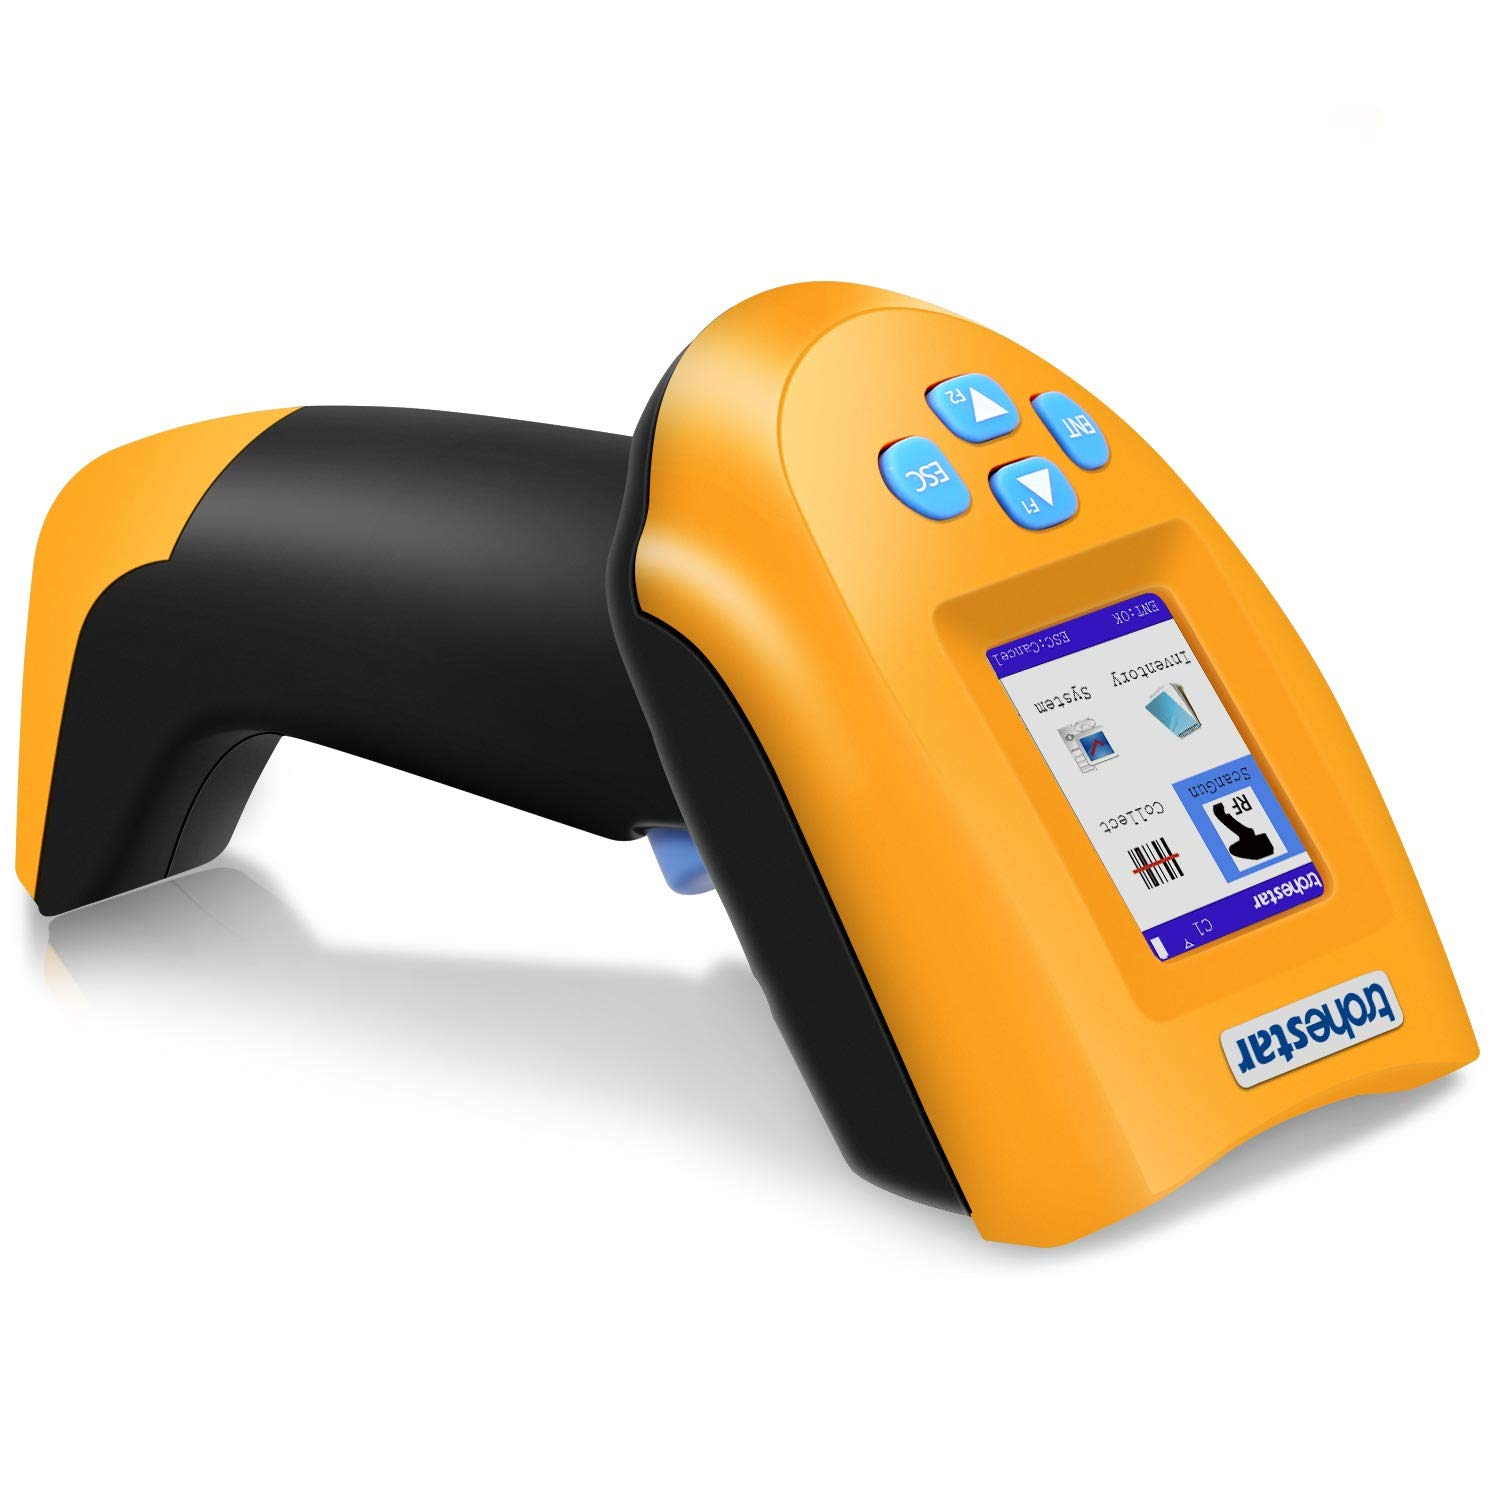 TroheStar 433Mhz Wireless Barcode Scanner, 1D USB Handheld Bar Code Reader Laser Cordless Automatic Bar Code Scanner and Collector Portable Data Terminal Inventory Device with TFT Color LCD Screen